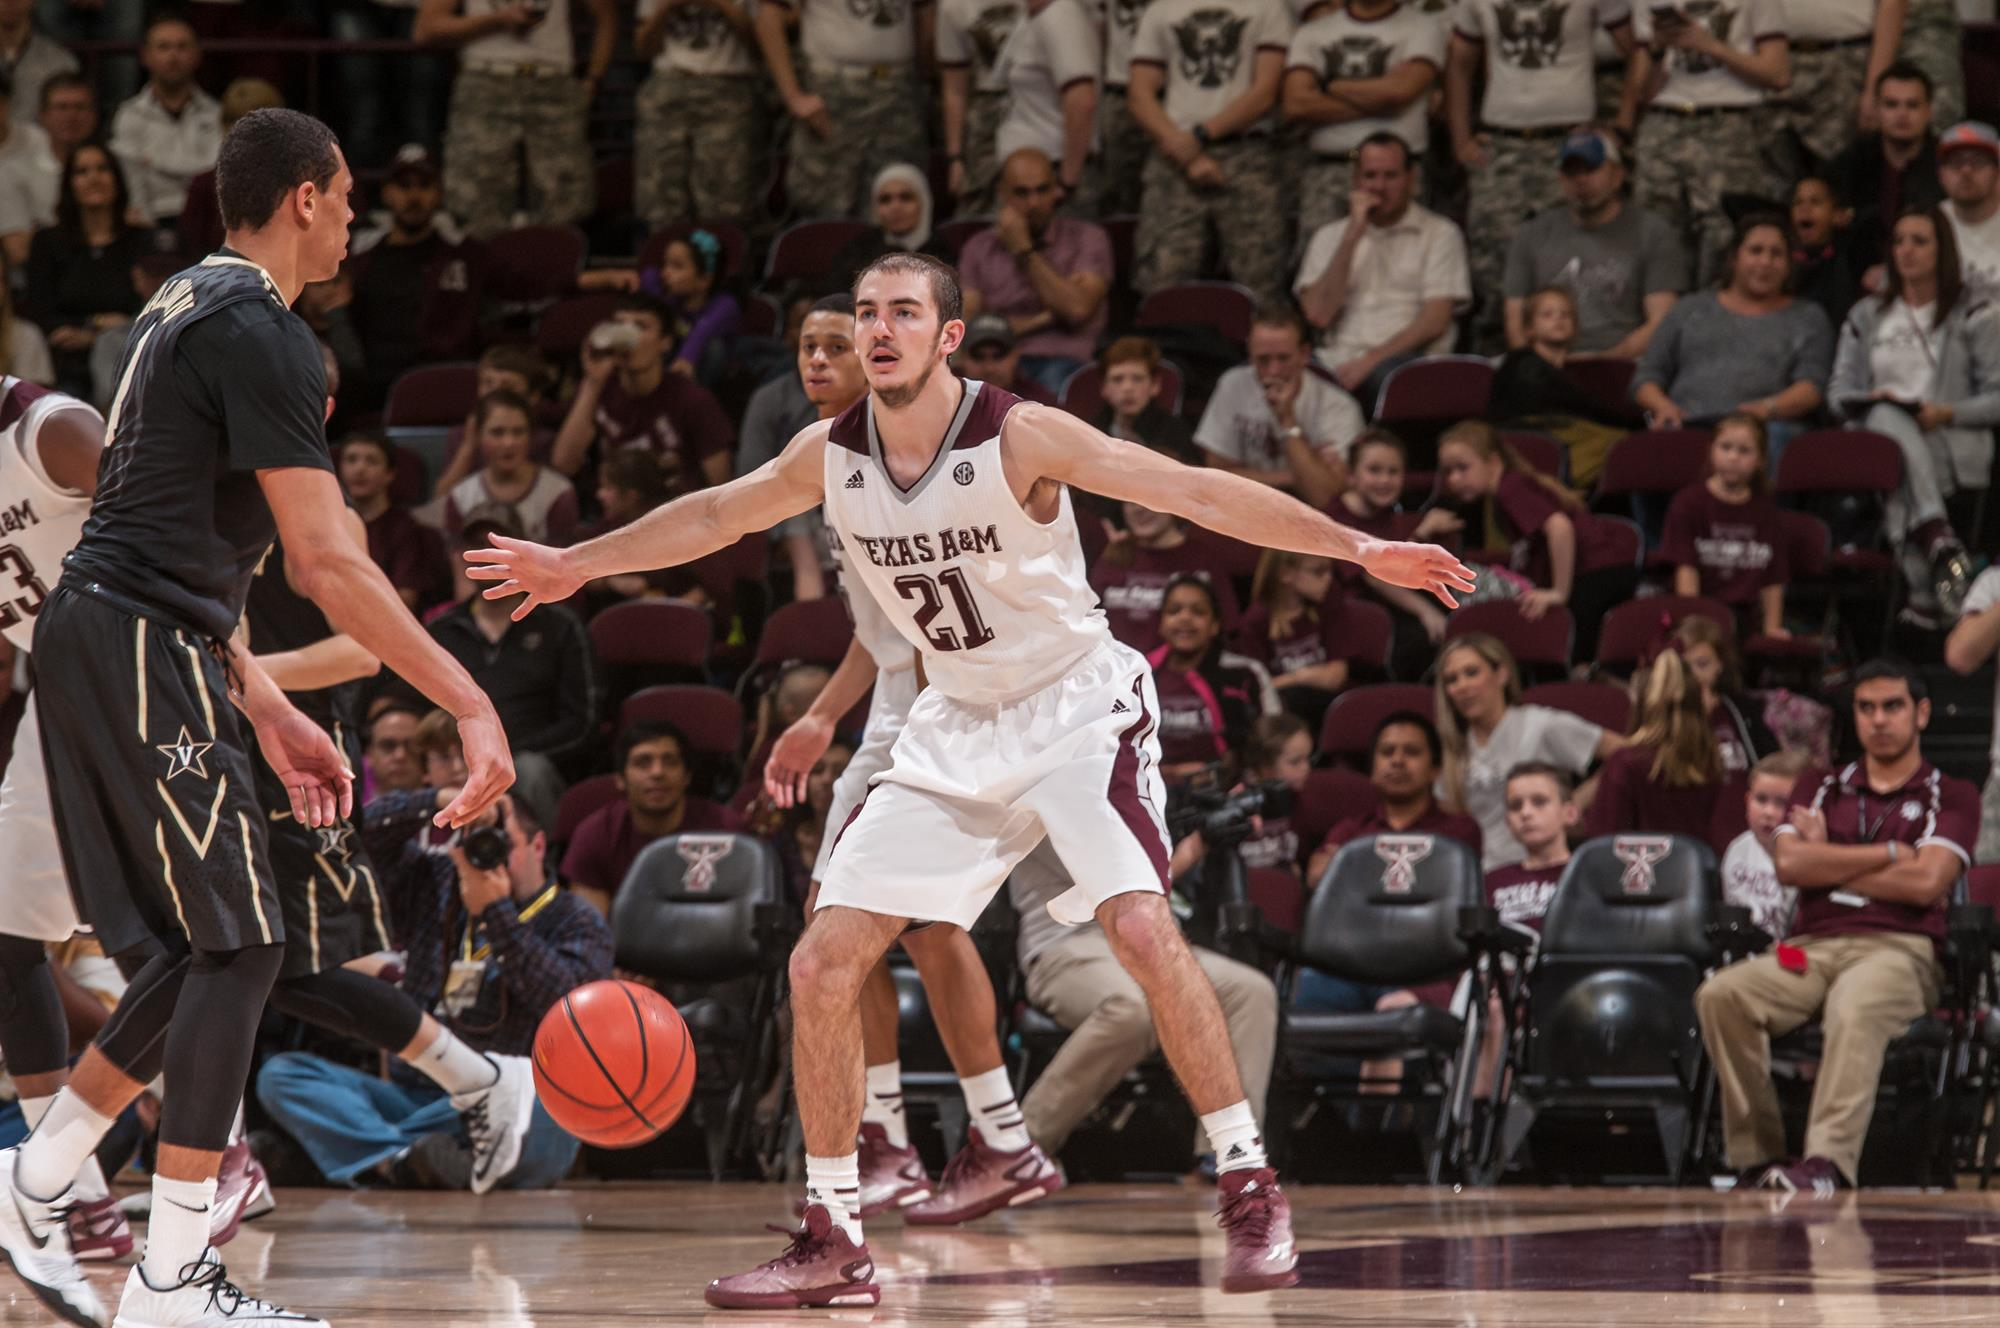 alex caruso - men's basketball - texas a&m university athletics